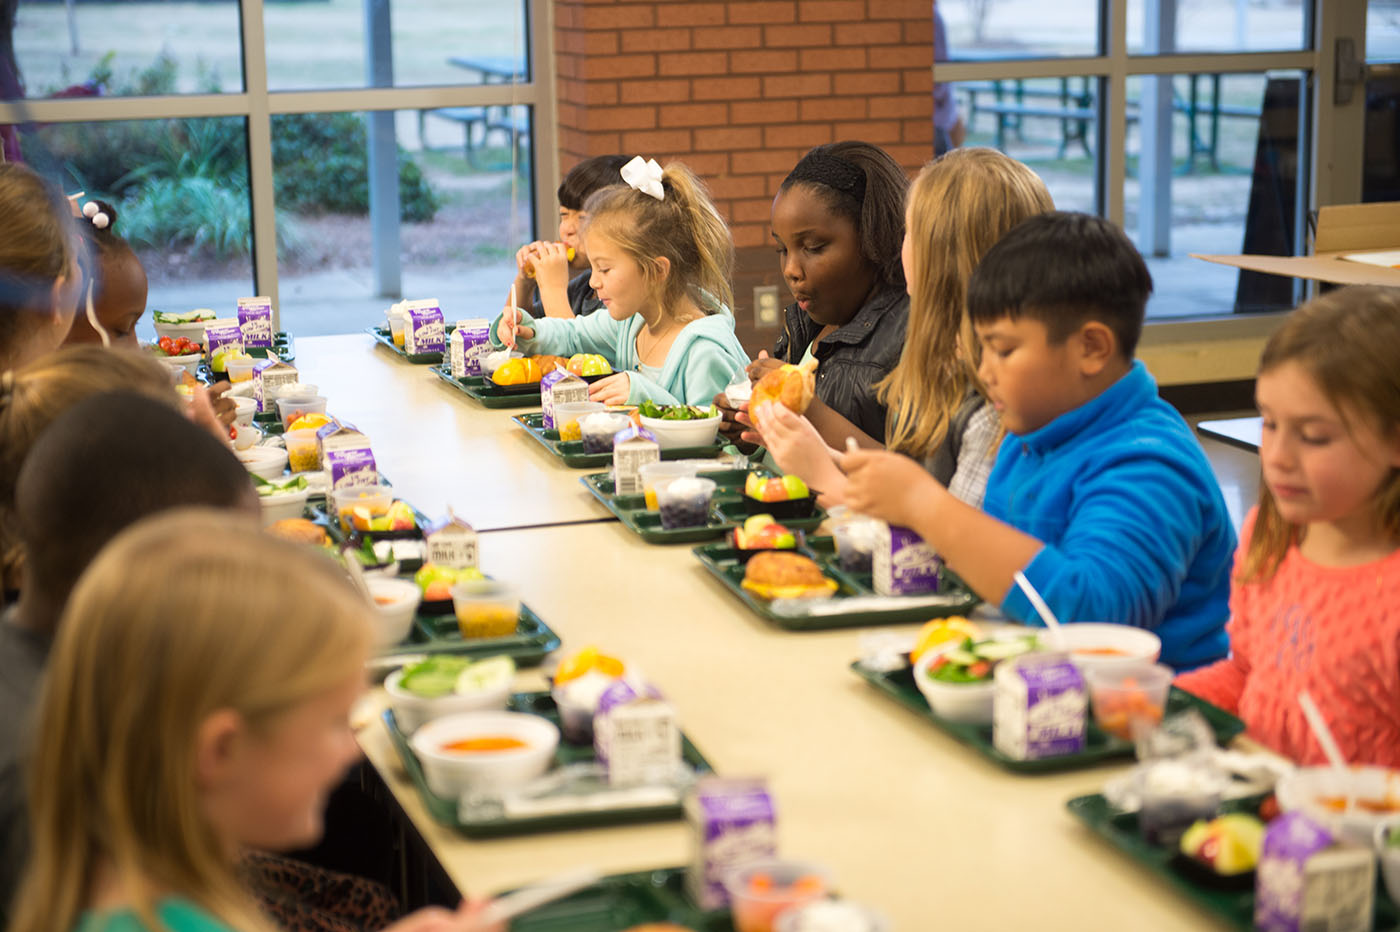 Children sitting at a lunchroom table and eating from their trays of healthy foods.